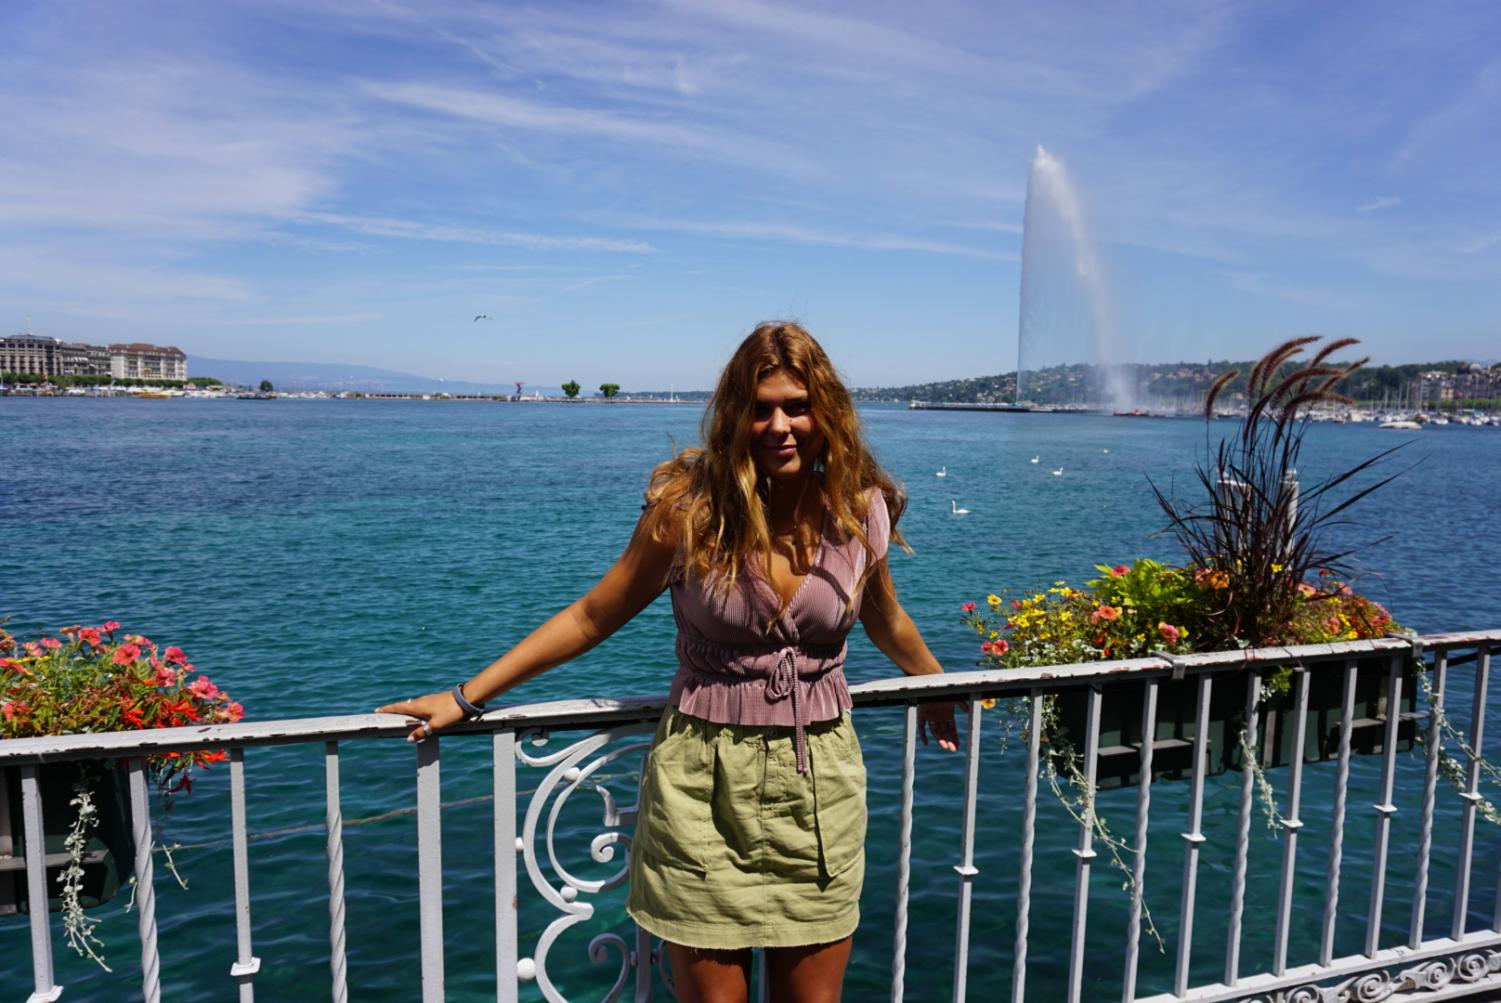 Emma Shiels poses in Annecy, France